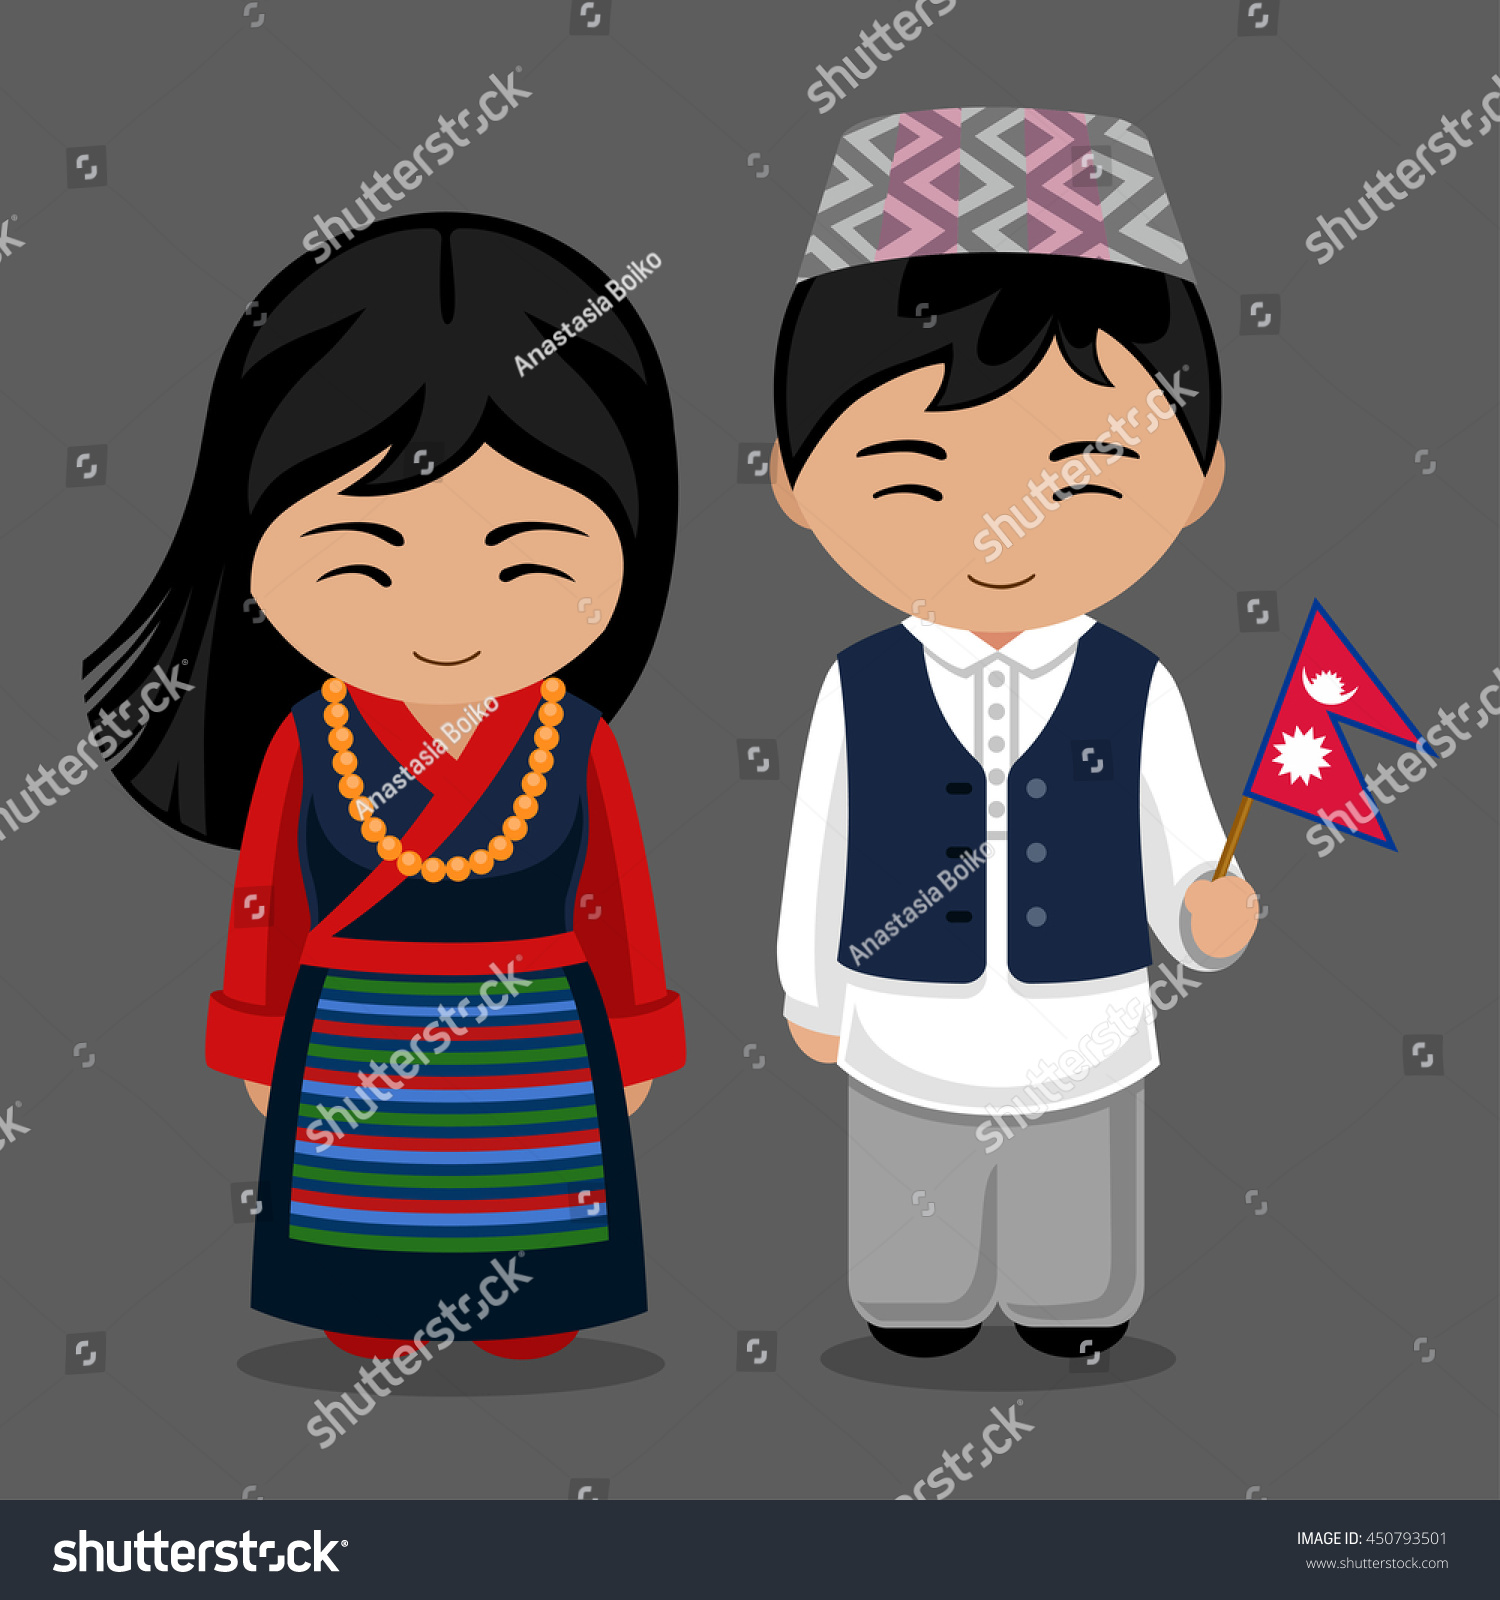 Welcome World League Of Beauty And Fashion Official Web: Nepalese National Dress Flag Man Woman Stock Vector